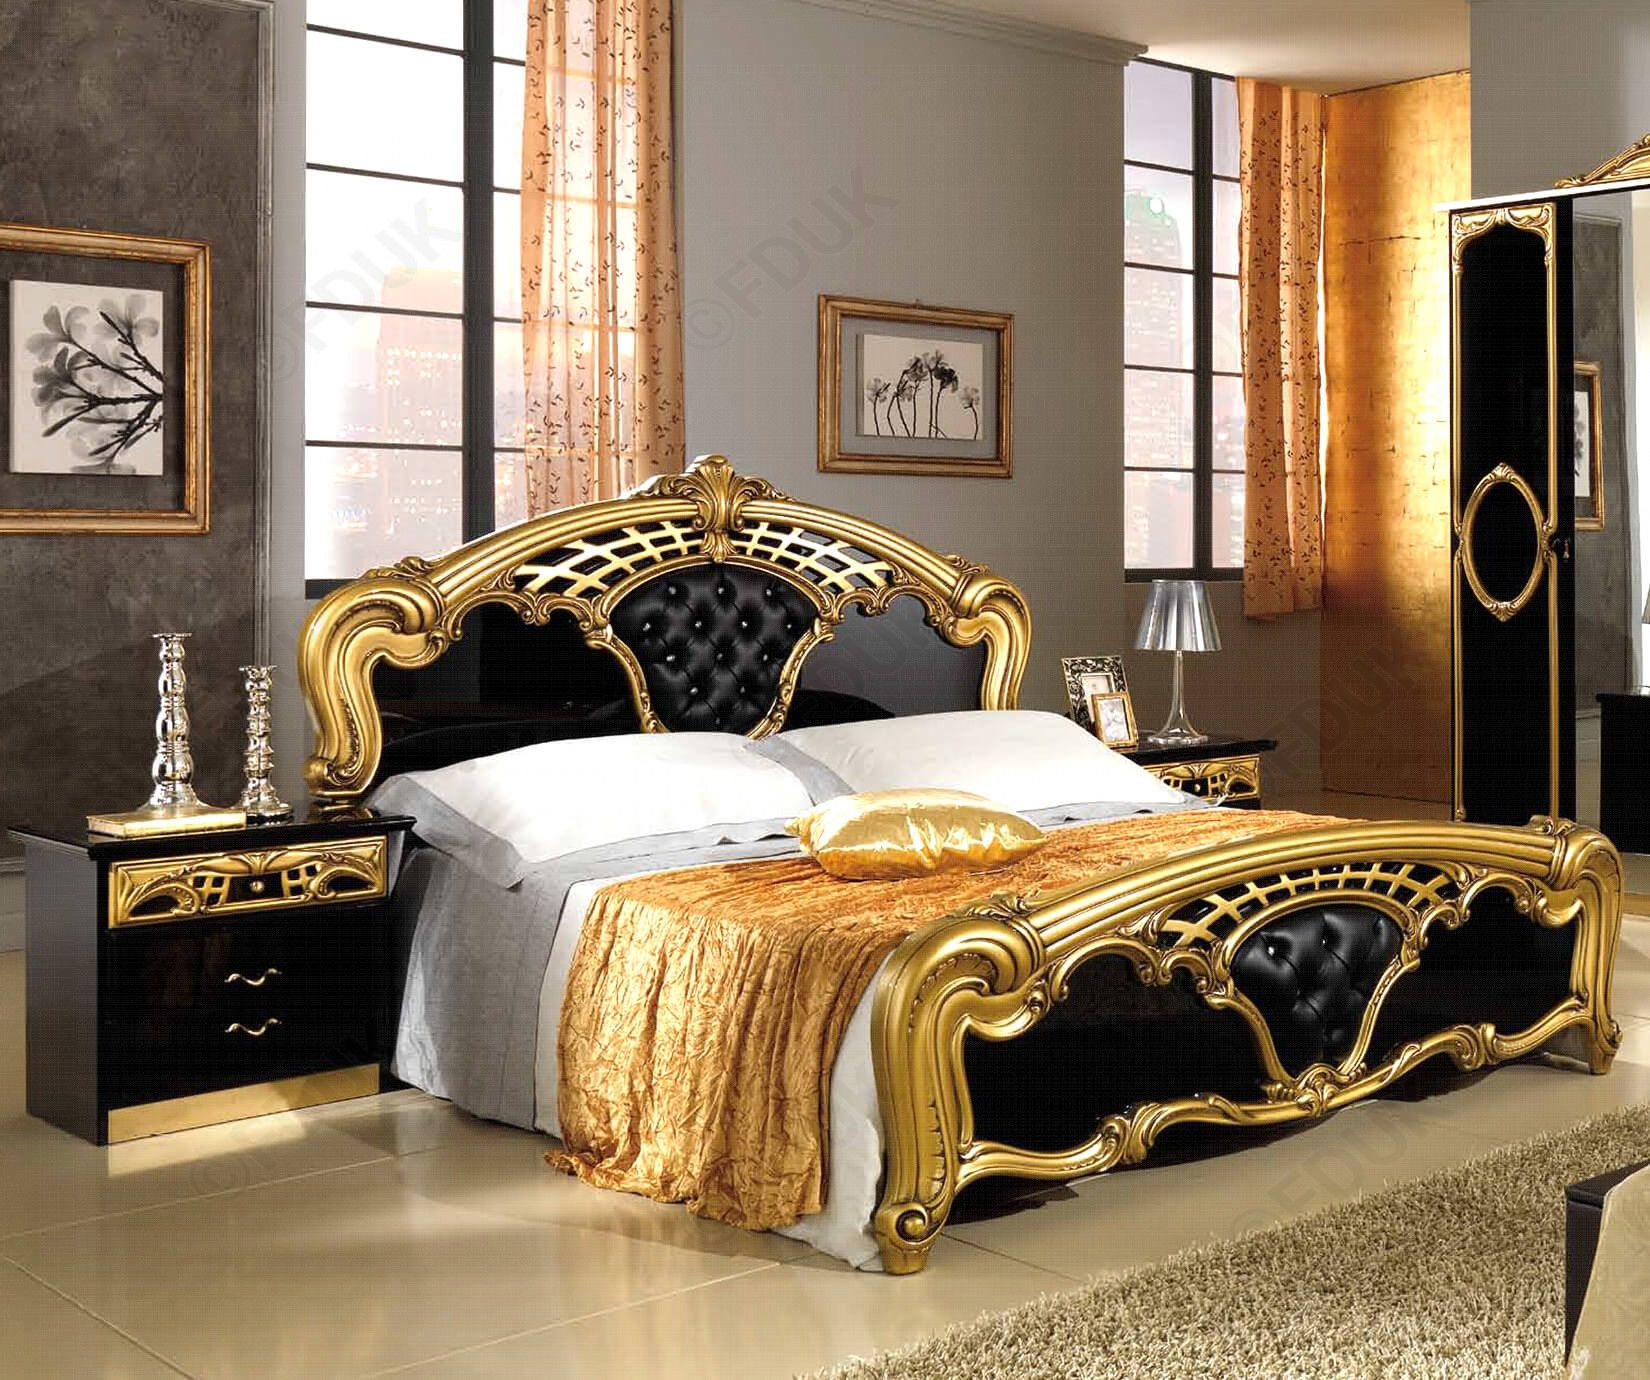 White And Gold Bedroom Furniture With